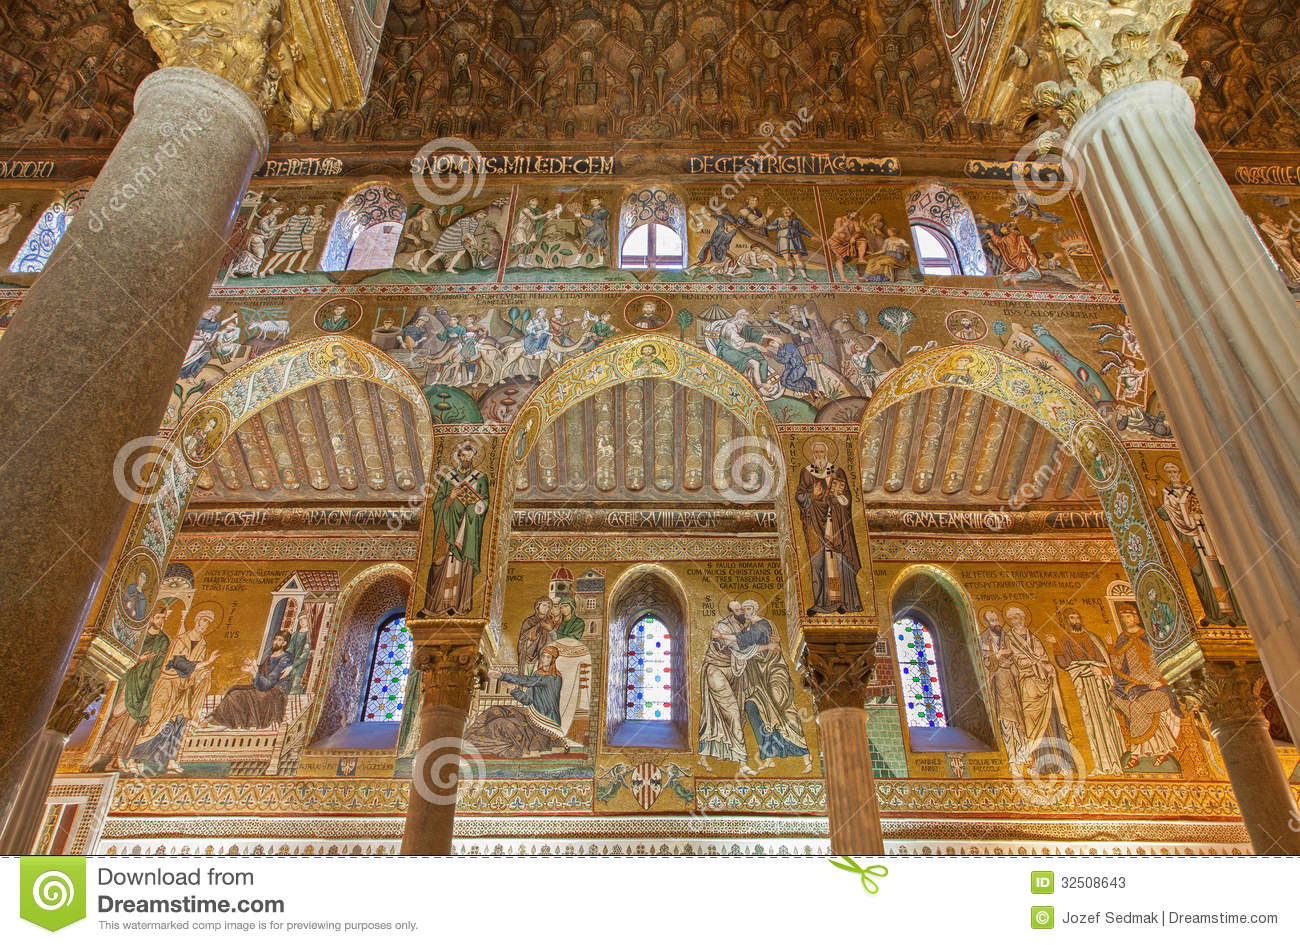 photo essay on byzantine art and architecture Architecture, byzantine the architecture of the byzantine empire at its outset was  essentially that of the late roman empire from which it emerged in the early.